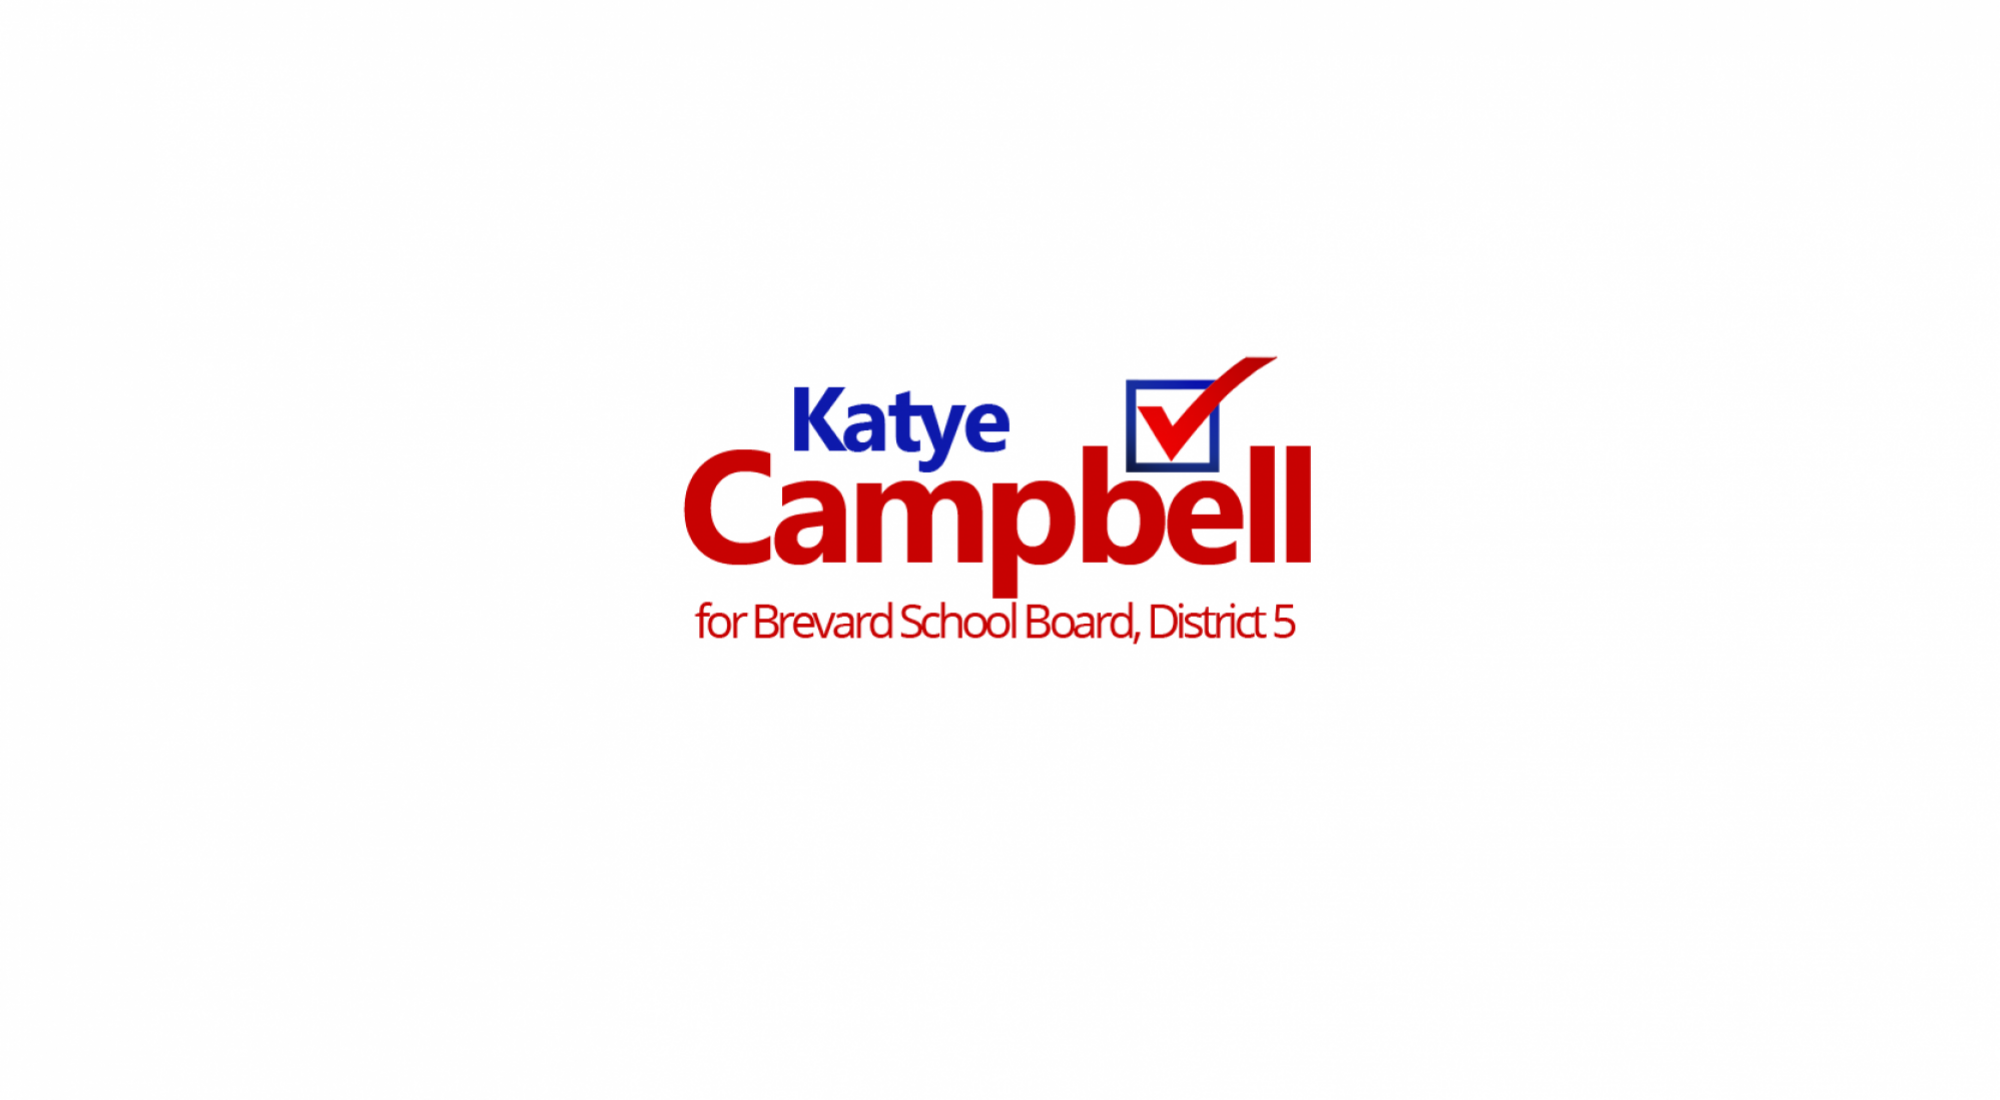 Katye Campbell for Brevard School Board, District 5